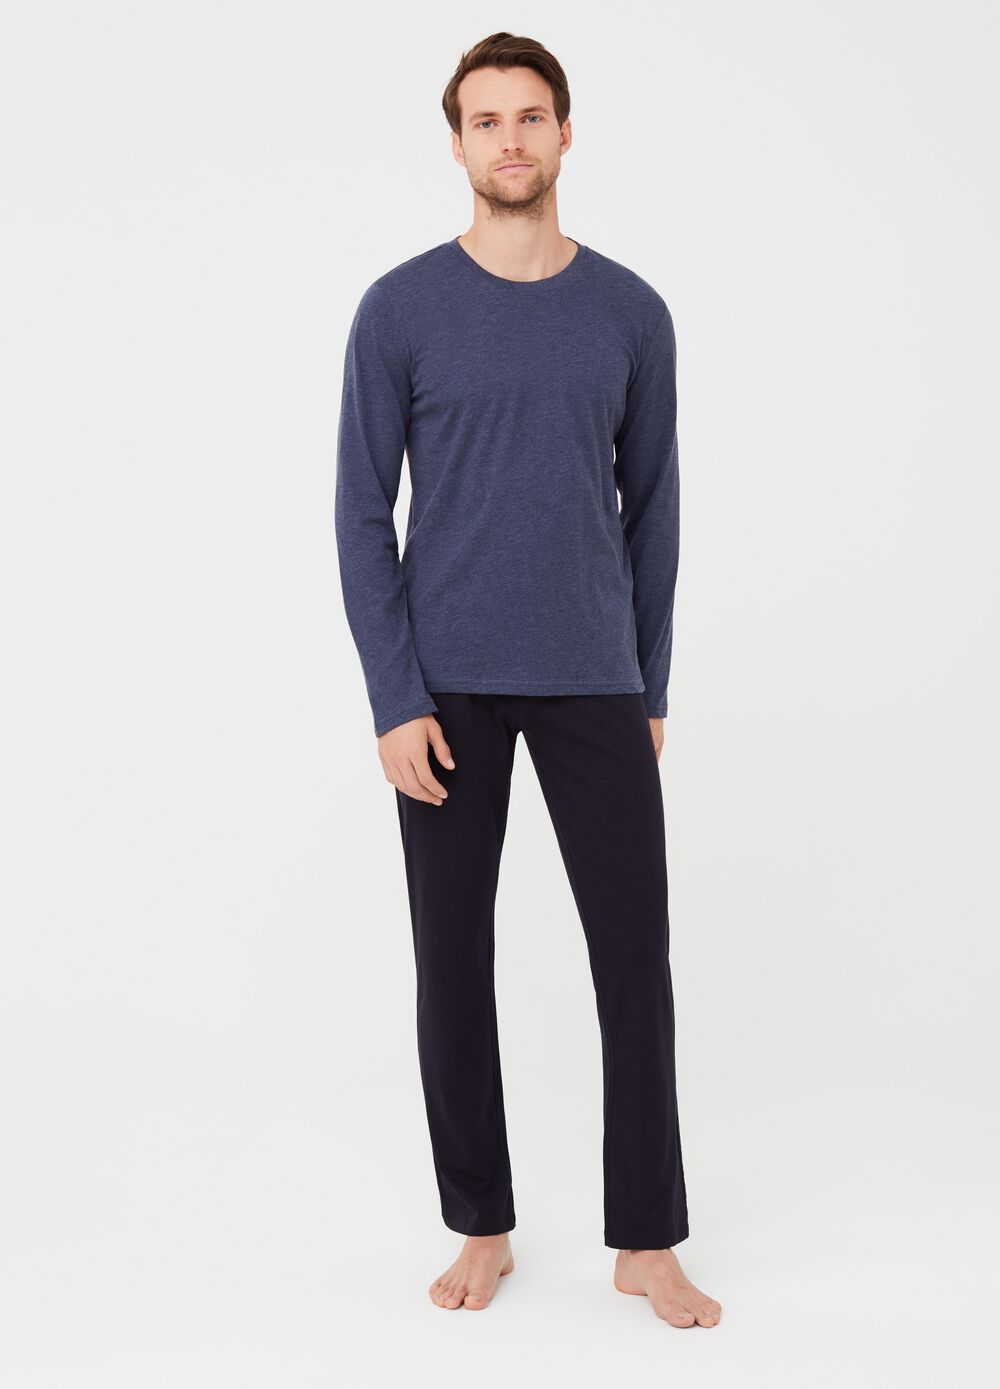 Pyjama top with round neck and trousers